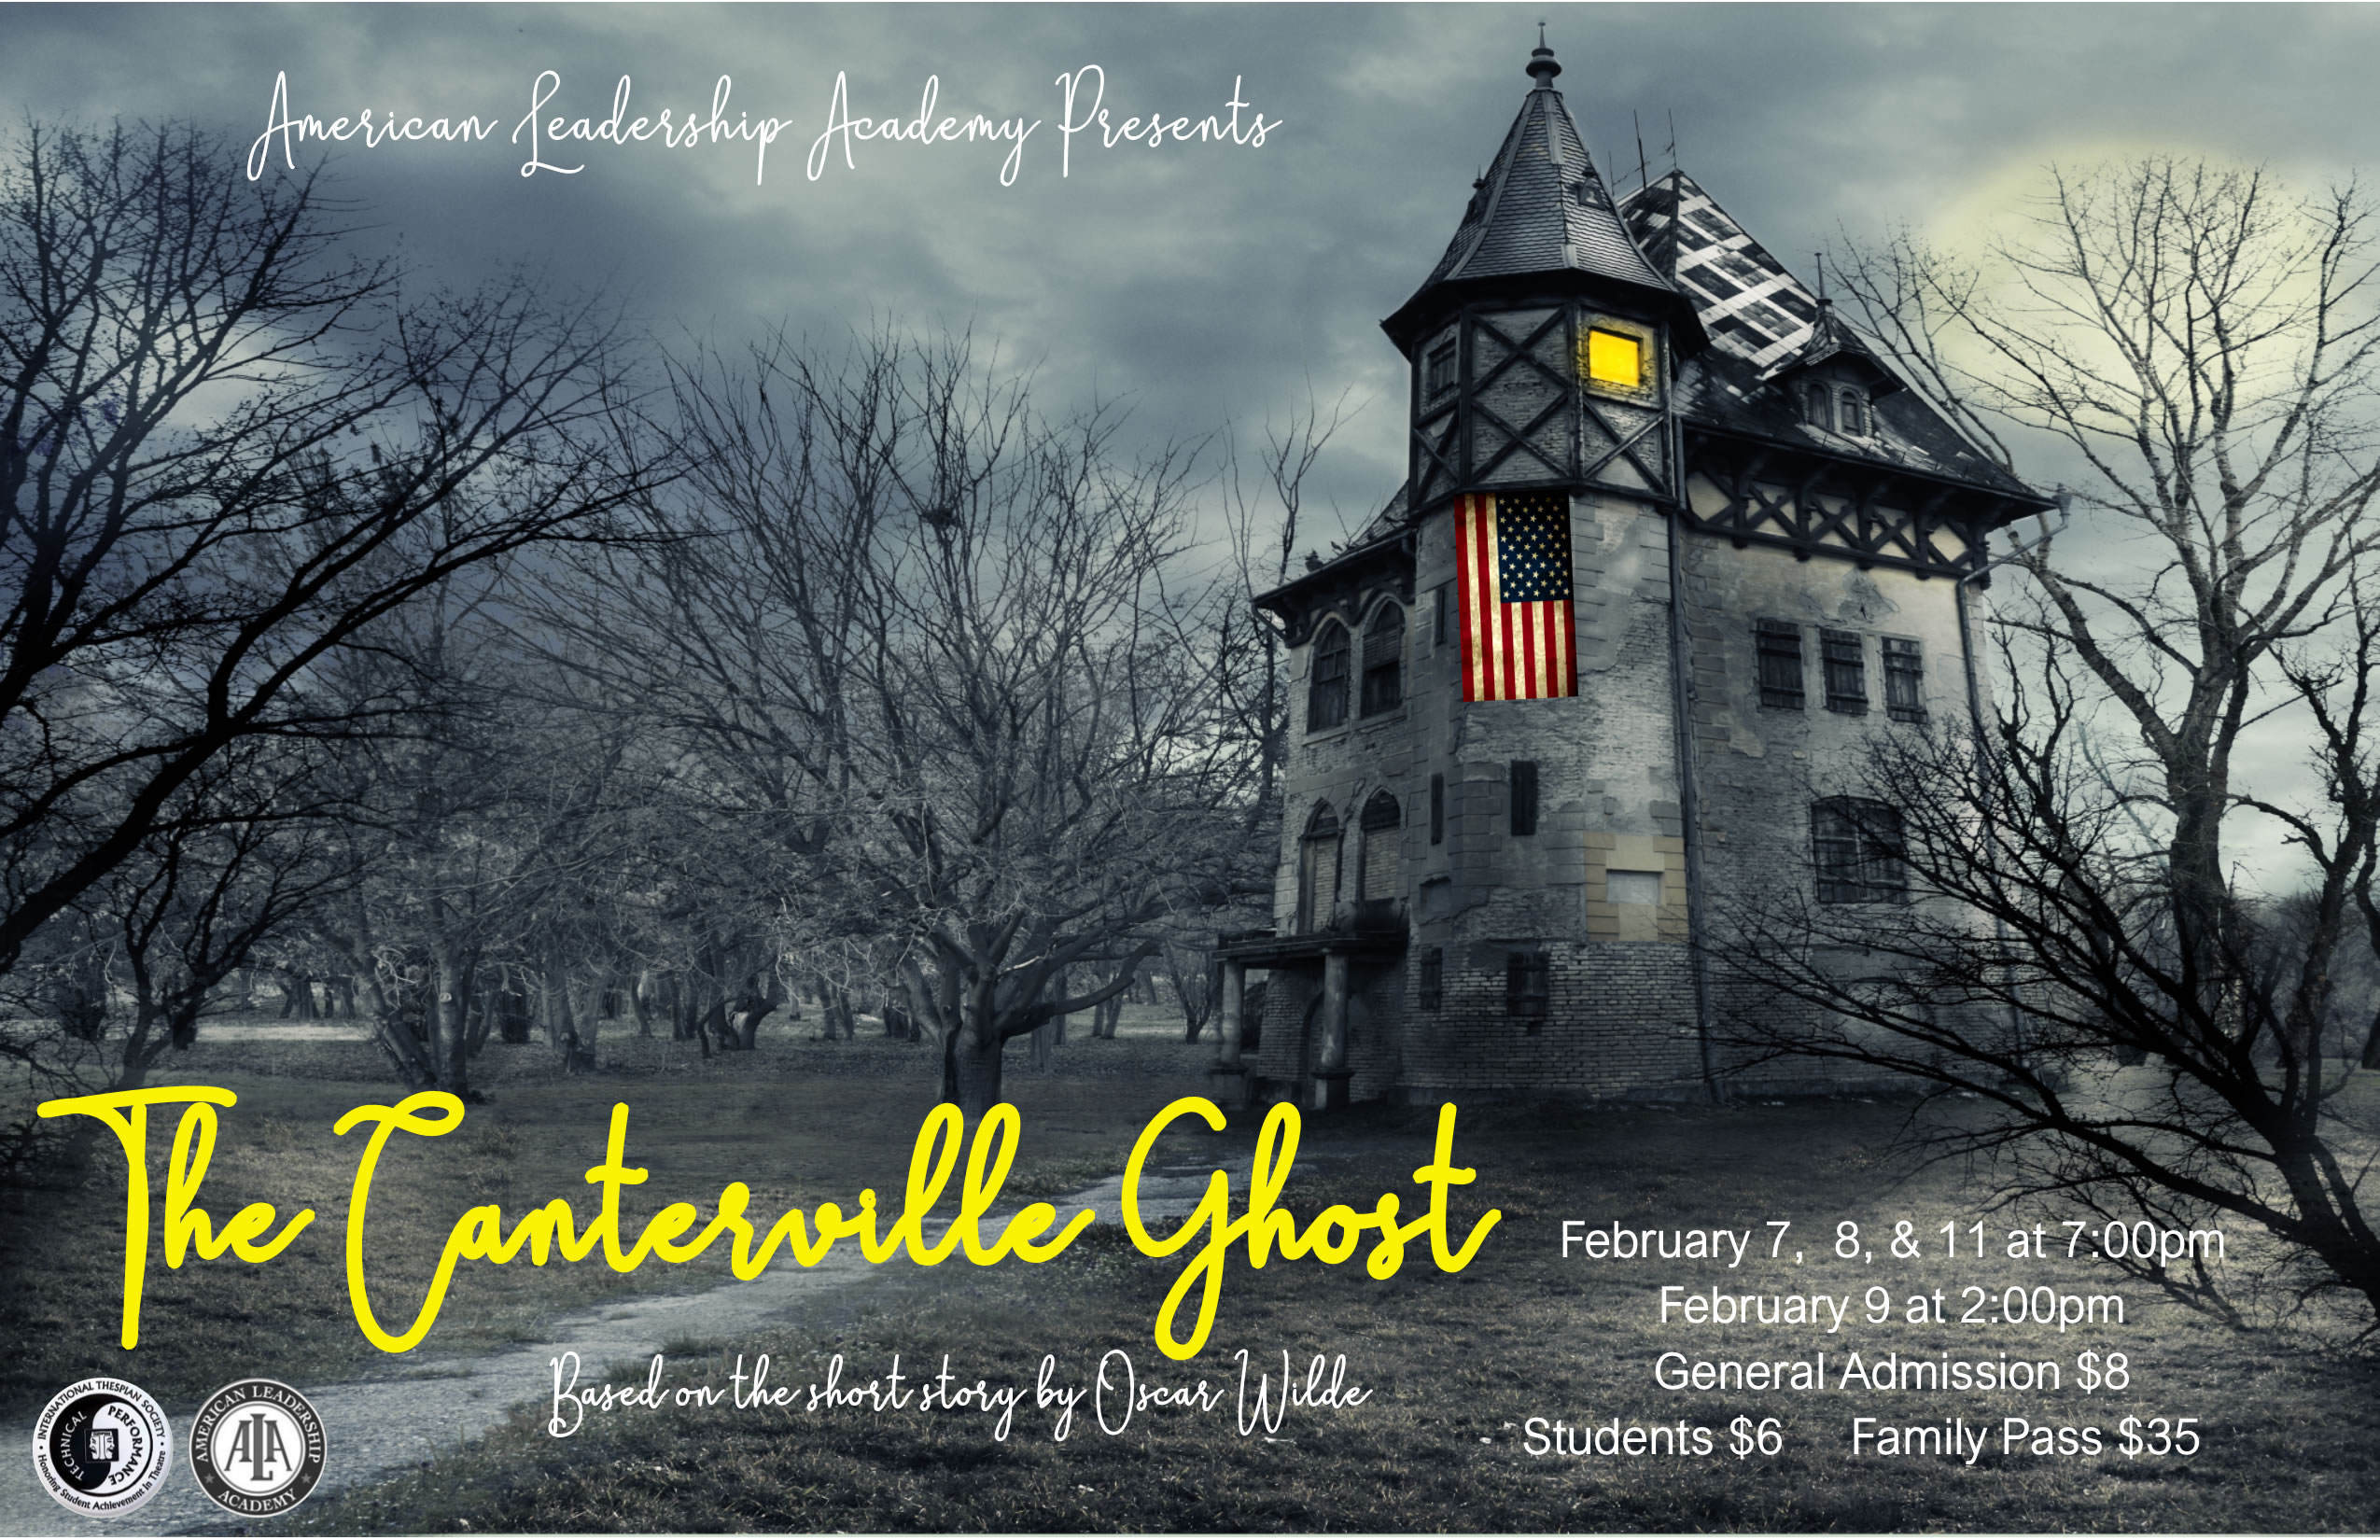 canterville-ghost-poster-2-1